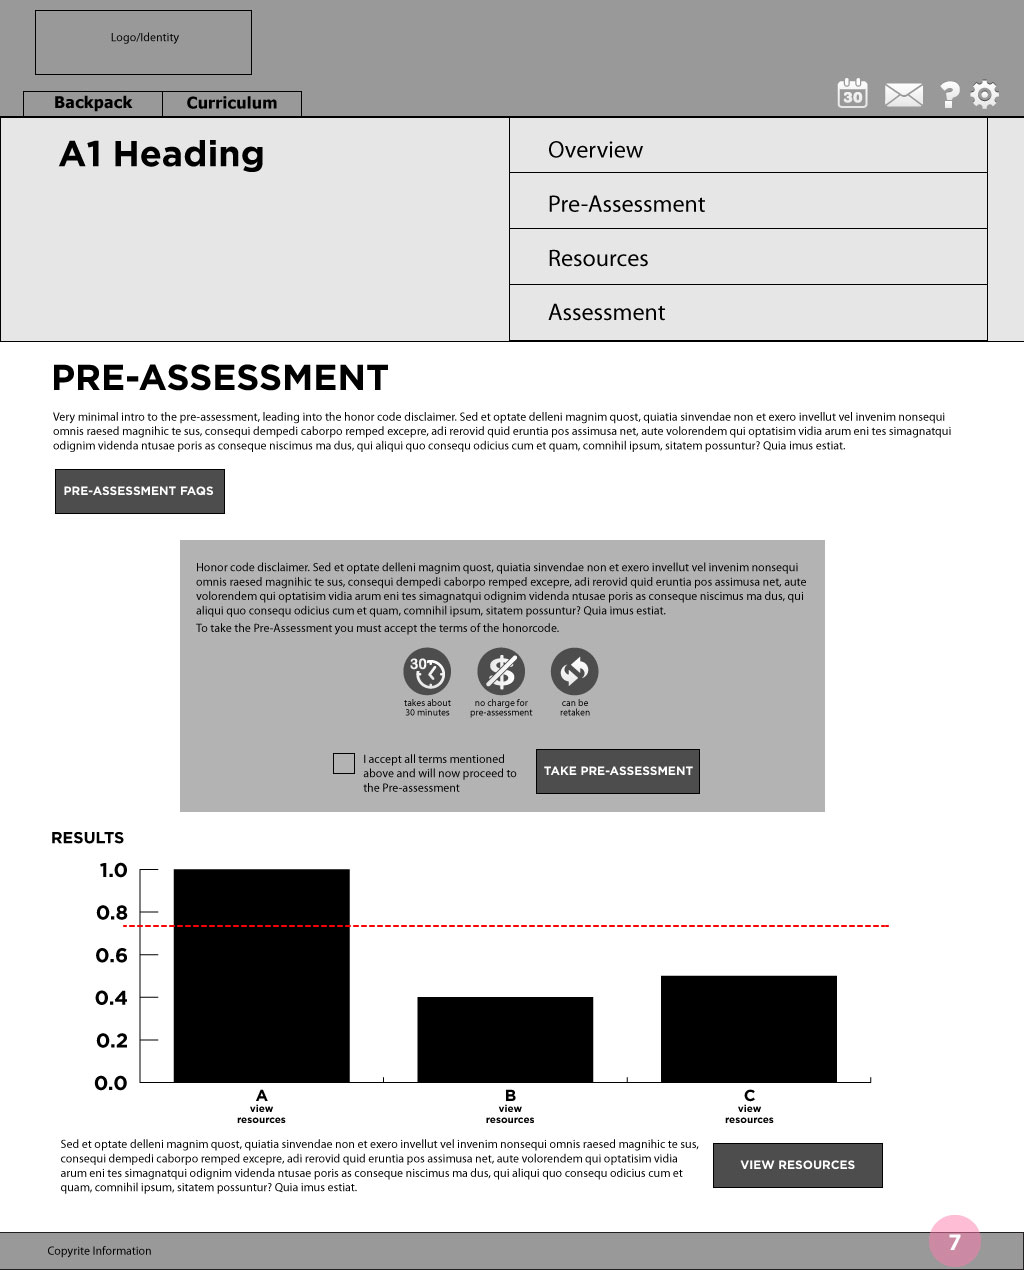 7_Wireframes_Preassessment